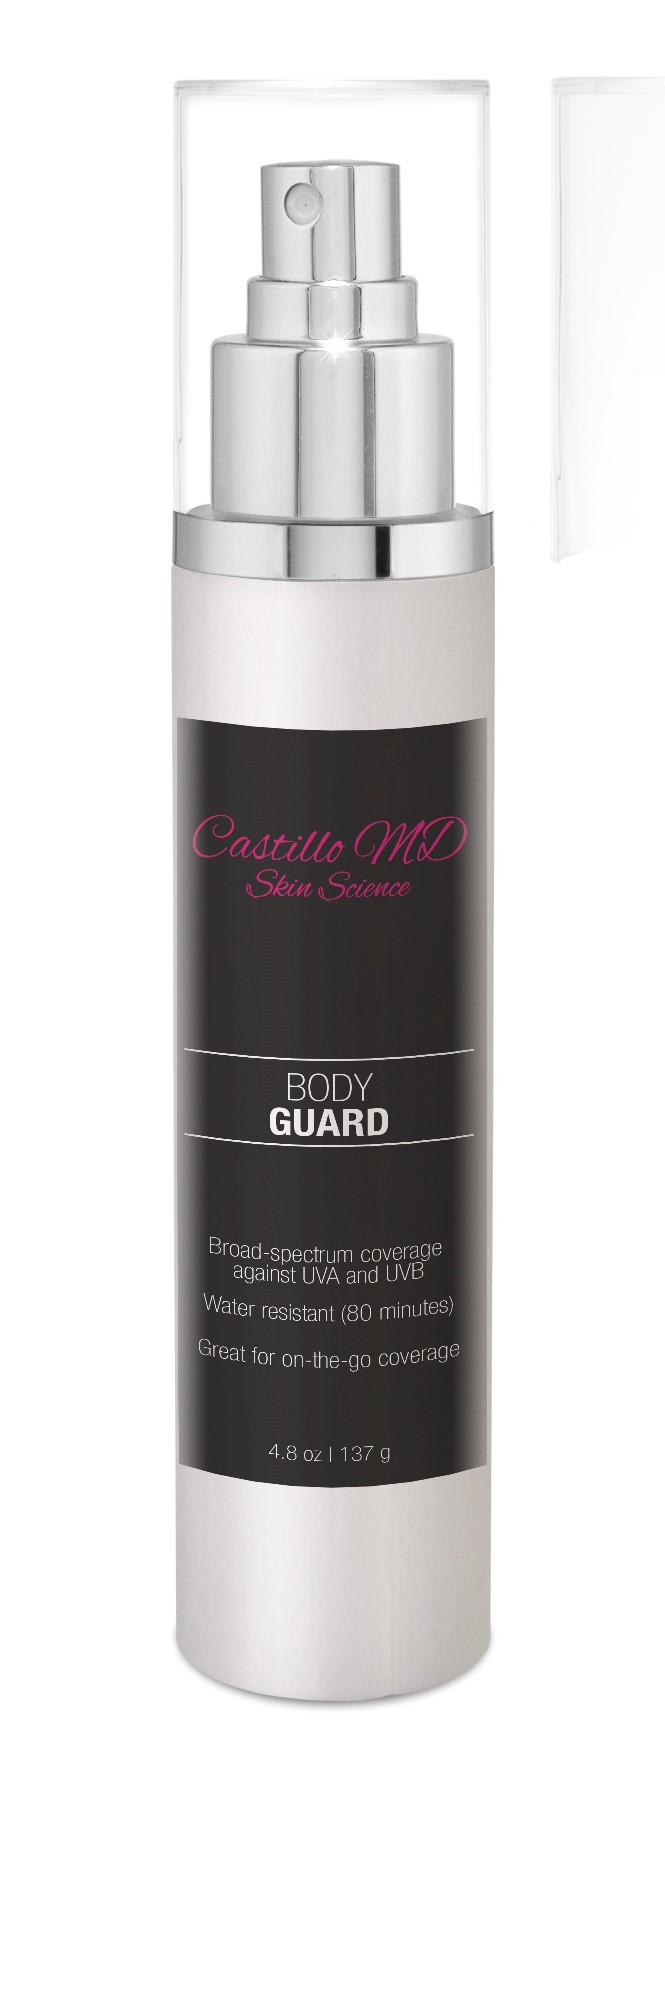 Bottle of body guard spf 46 by castillo md skin science